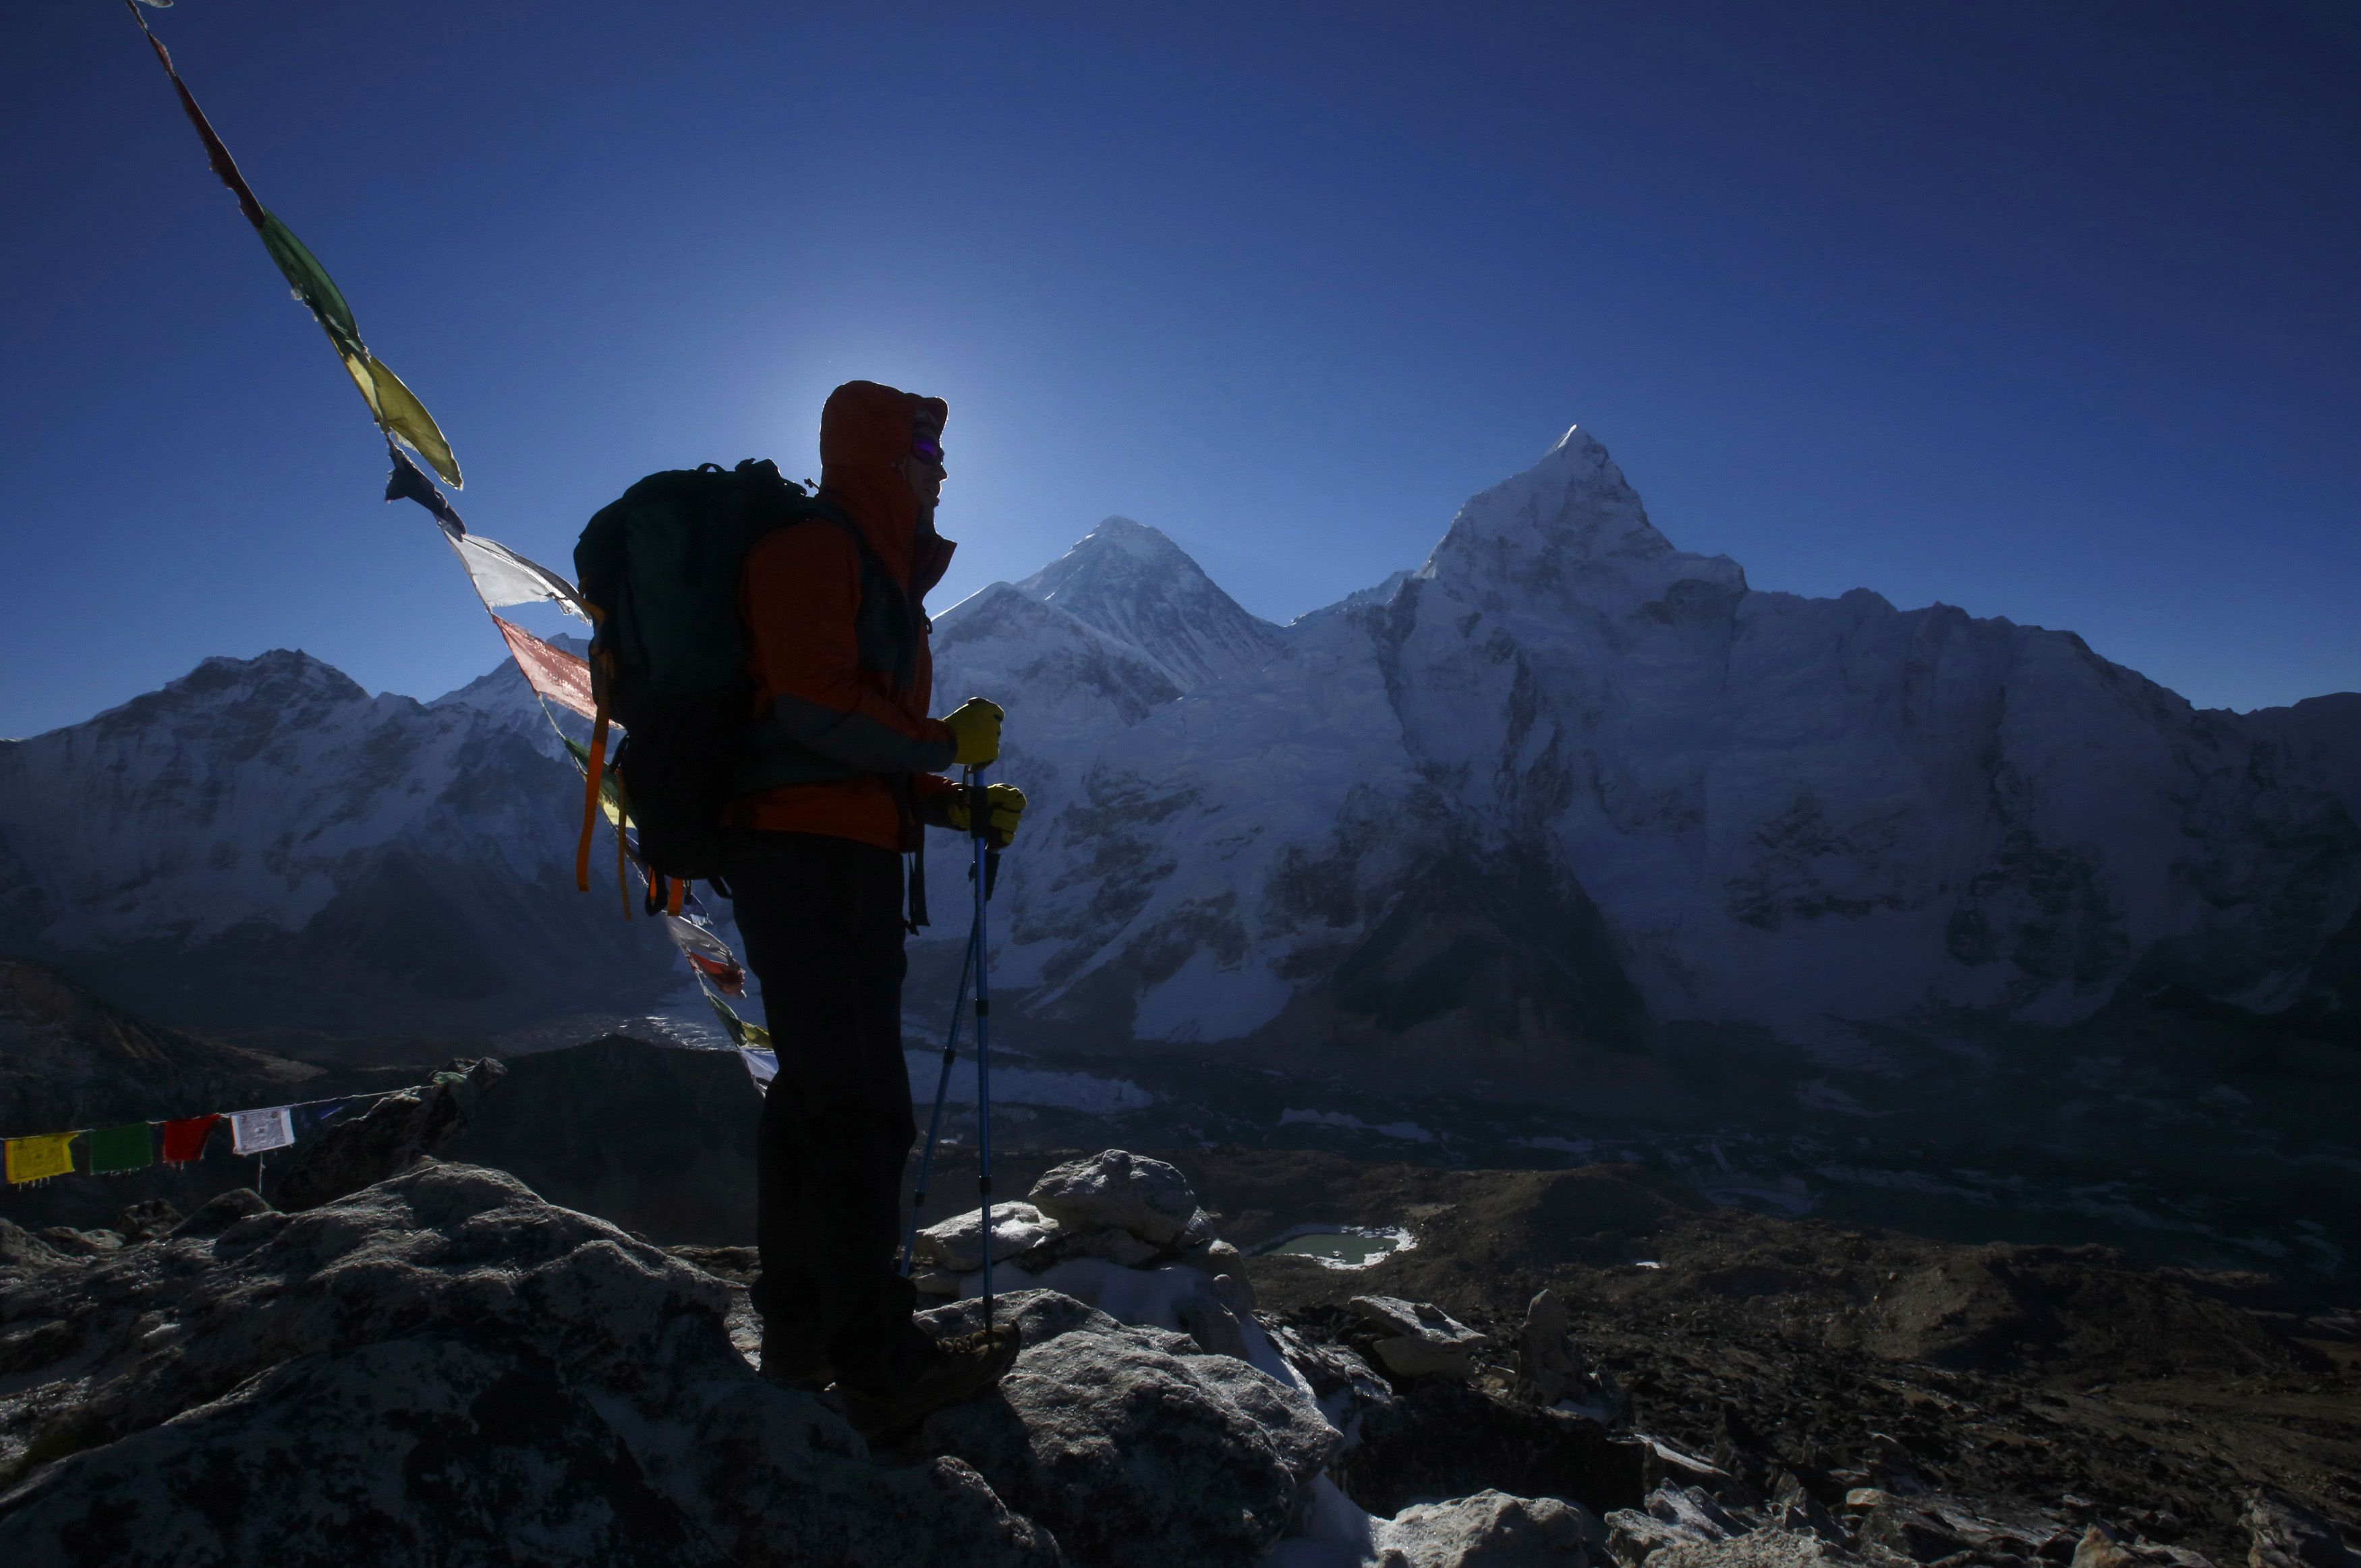 A trekker stands in front of Mount Everest, which is 8,850 meters high (C), at Kala Patthar in Solukhumbu District May 7, 2014. More than 4,000 climbers have reached the summit of Everest, the world's highest peak, since it was first scaled by Sir Edmund Hillary and Tenzing Norgay Sherpa in 1953. In April, an avalanche killed 16 Nepali Sherpa guides who were fixing ropes and ferrying supplies for their foreign clients to climb the 8,850-metre (29,035-foot) peak. The accident - the deadliest in the history of Mount Everest - triggered a dispute between sherpa guides who wanted a climbing ban in honour of their colleagues and the Nepali government that refused to close the mountain. The sherpas staged a boycott, forcing hundreds of foreign climbers to call off their bids to climb Everest.  Picture taken May 7, 2014.  REUTERS/Navesh Chitrakar (NEPAL - Tags: ENVIRONMENT SOCIETY BUSINESS EMPLOYMENT TRAVEL TPX IMAGES OF THE DAY)  ATTENTION EDITORS: PICTURE 44 OF 45 FOR PACKAGE 'AFTER THE AVALANCHE - ASCENT TO EVEREST' TO FIND ALL IMAGES SEARCH 'CHITRAKAR EVEREST' - RTR3SBJM